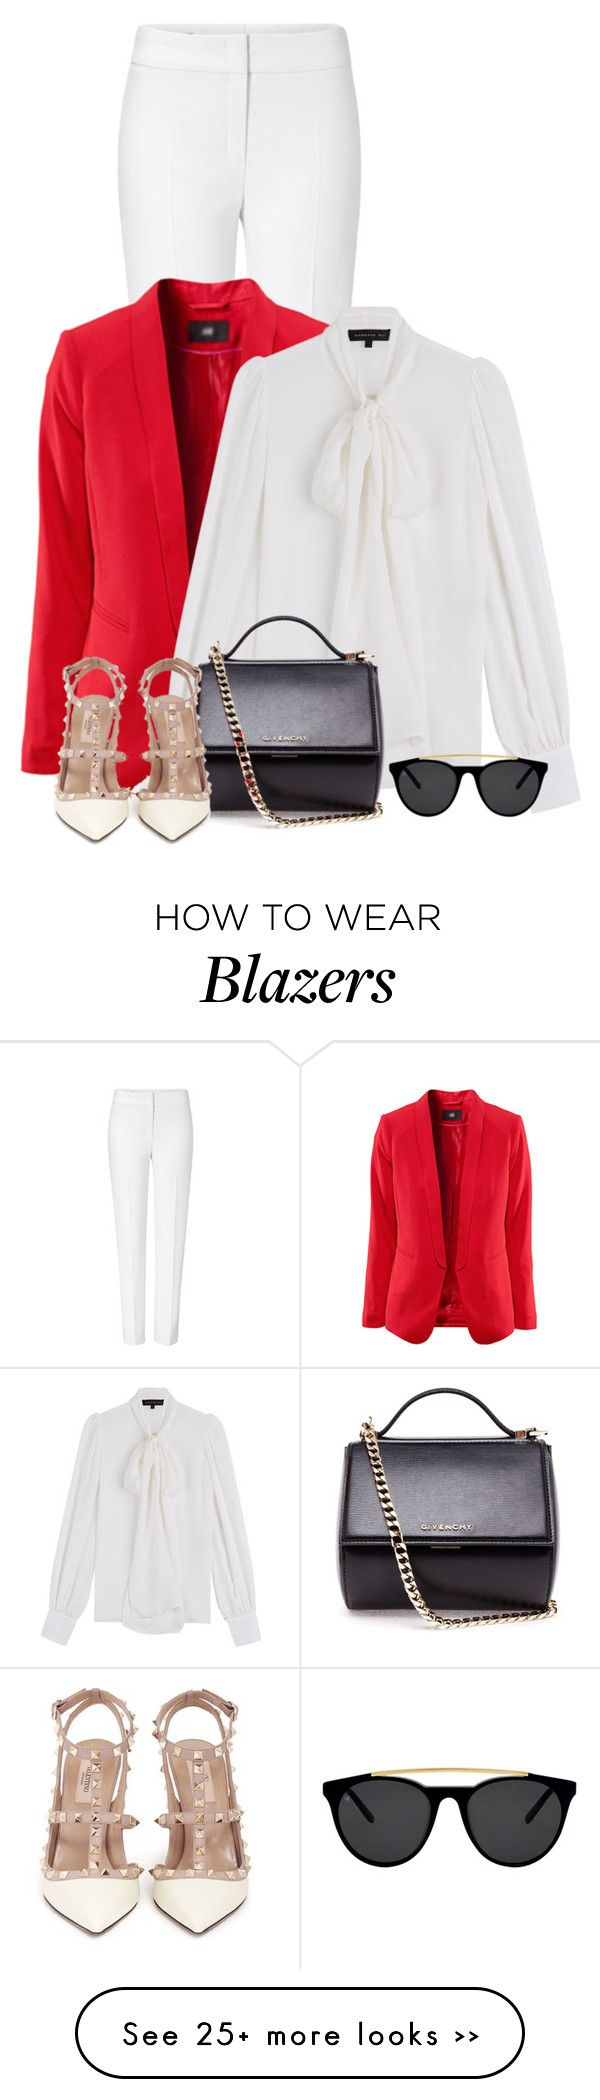 """Untitled #3787"" by linda56draco on Polyvore"